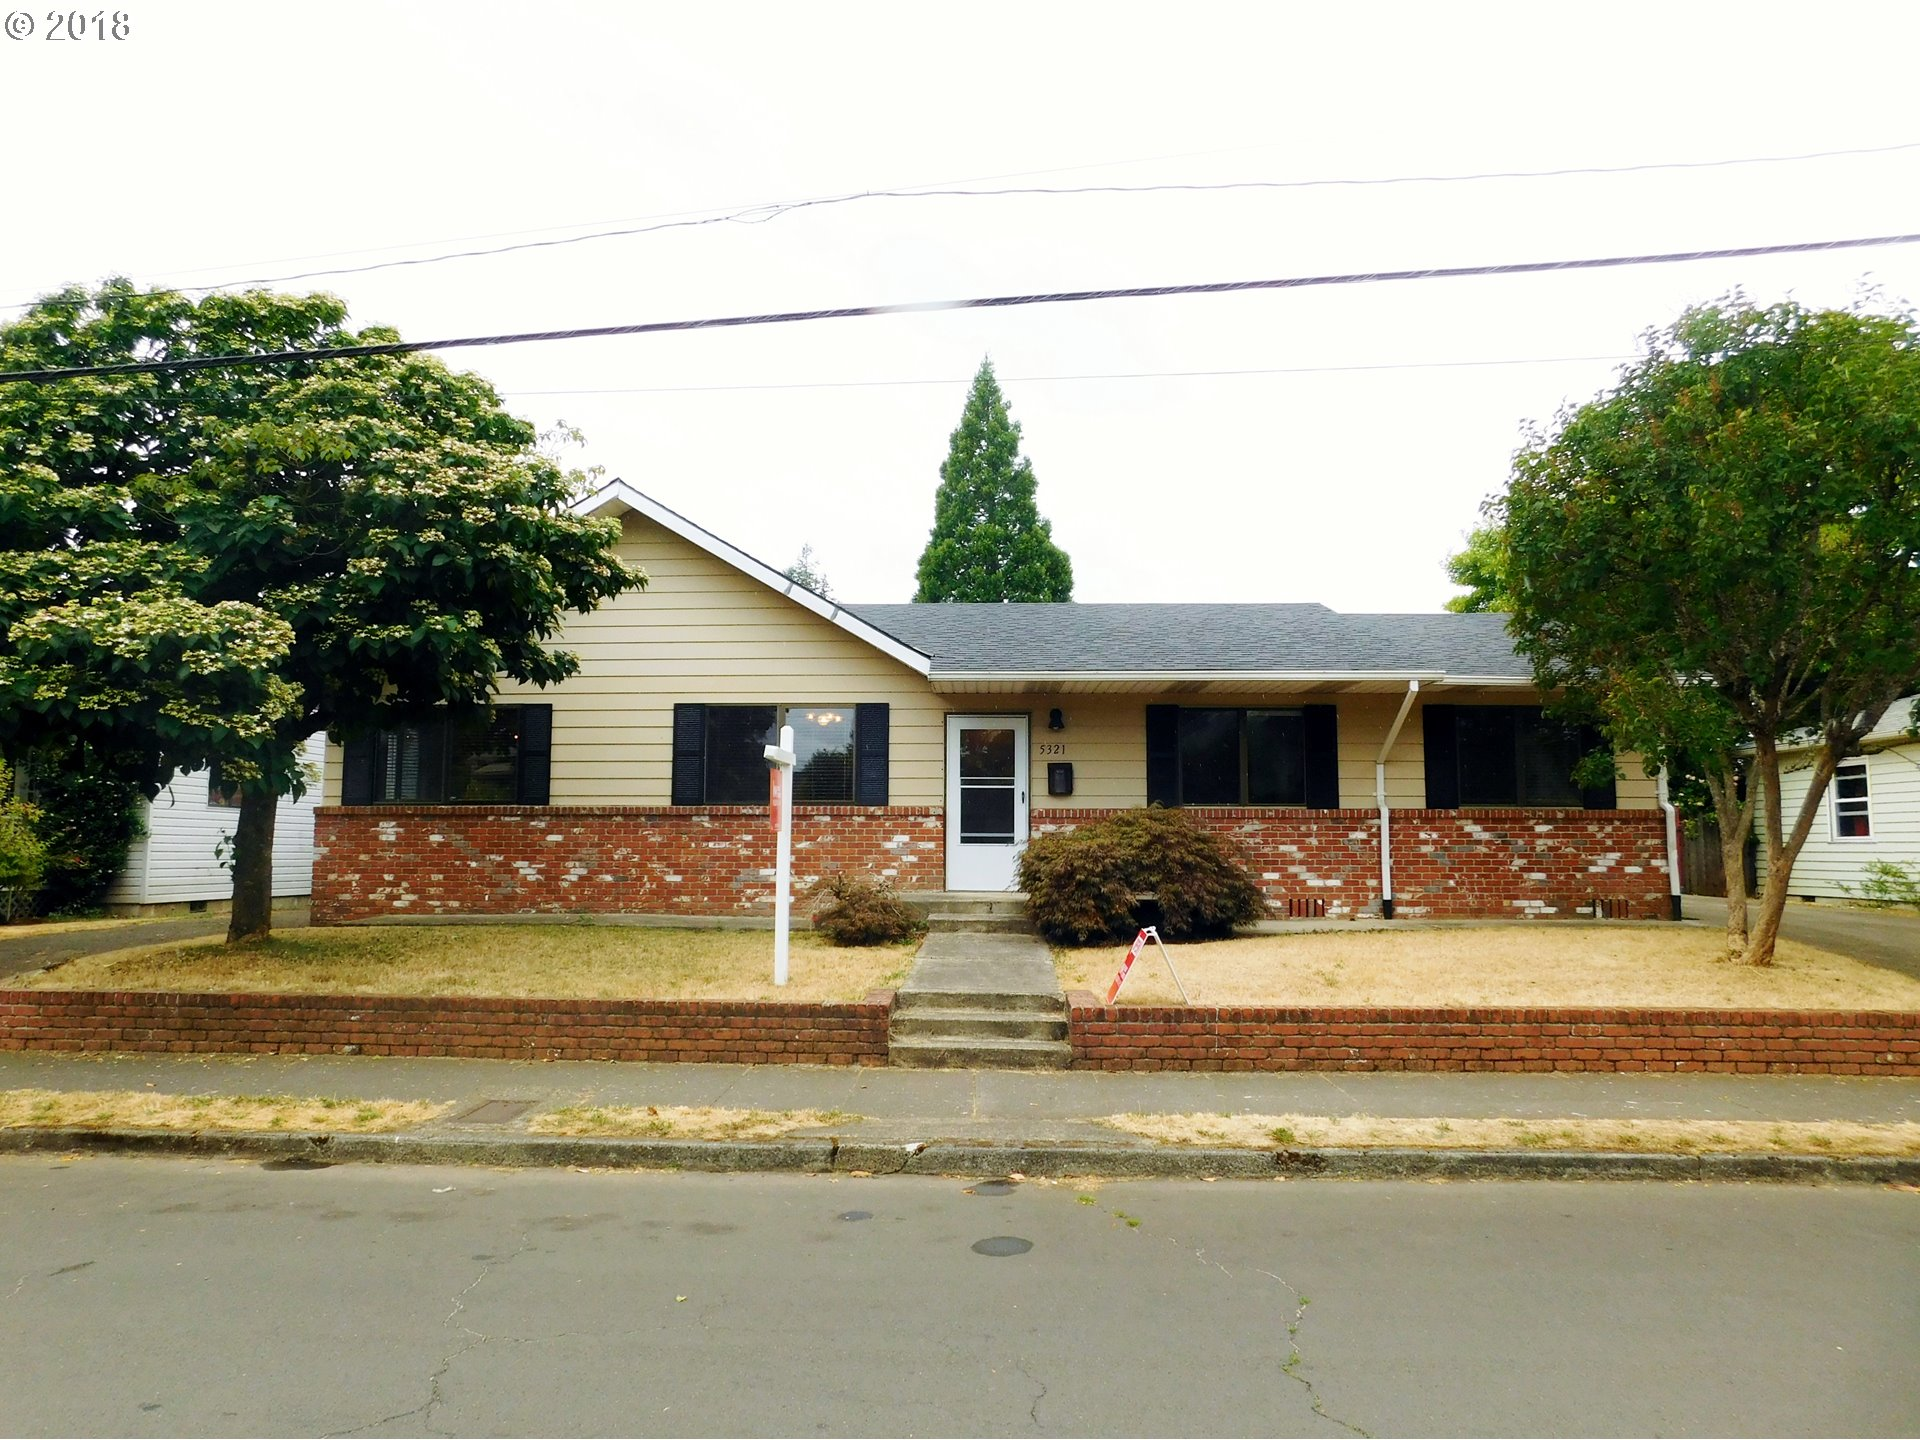 1499 sq. ft 3 bedrooms 2 bathrooms  House For Sale,Portland, OR